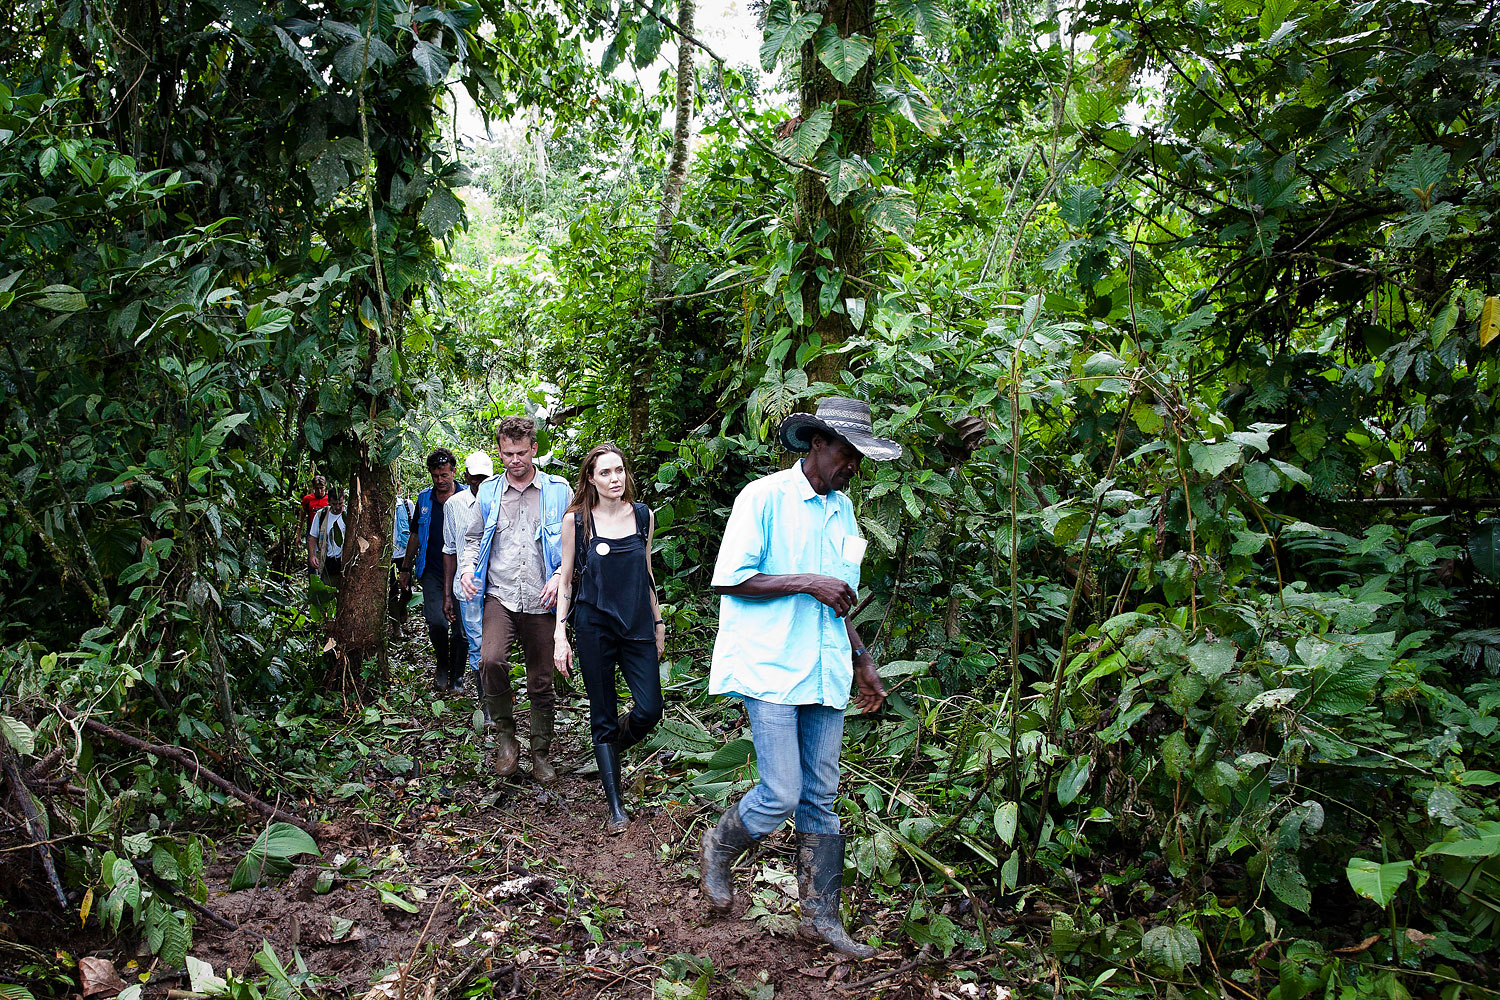 Angelina Jolie walks through the jungle led by Plinio, the President of Providencia community on April 22, 2012 in Ecuador.